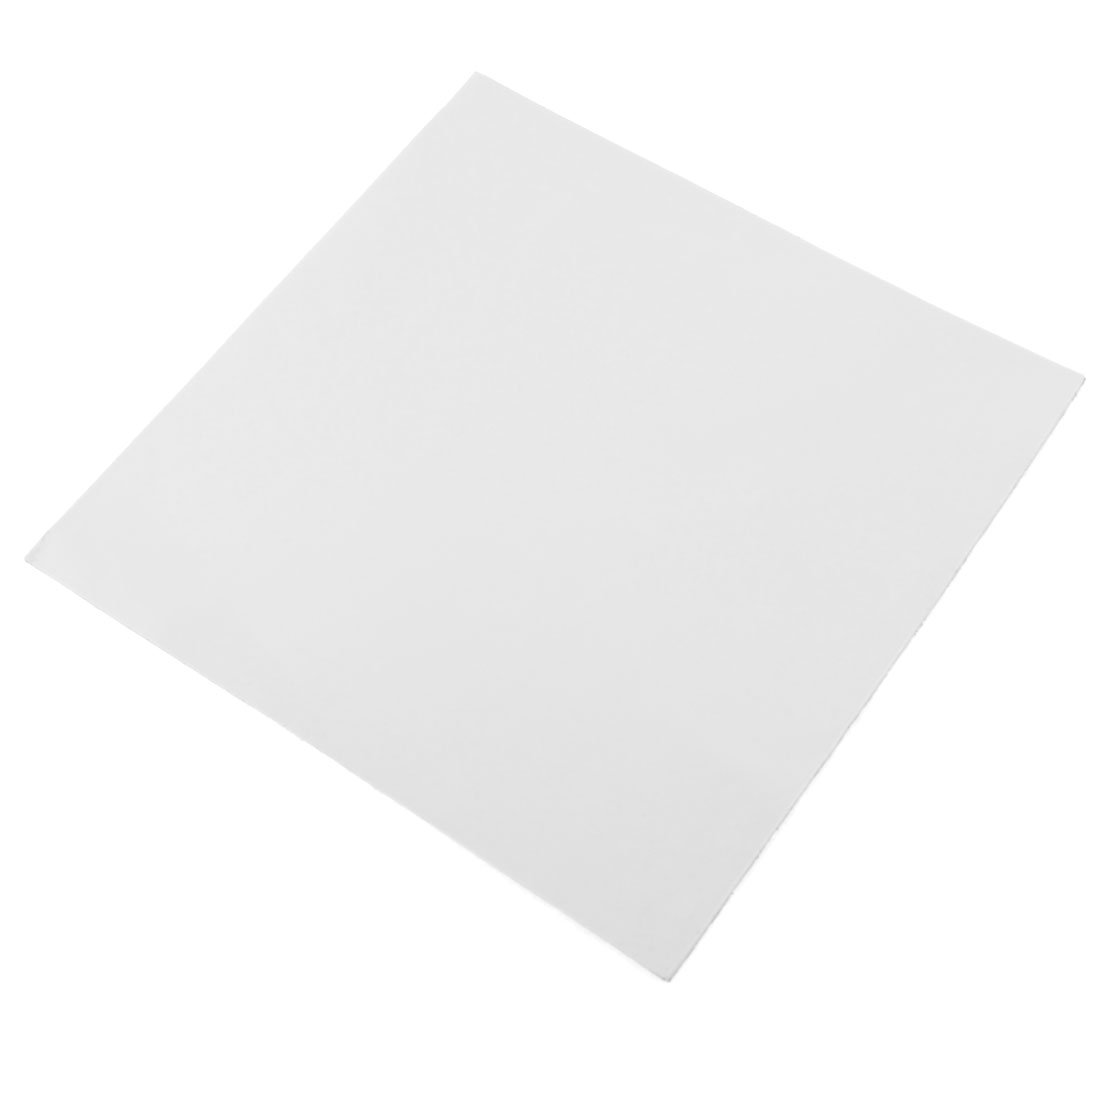 uxcell a13091600ux0058 CPU Thermal Cooling Silicone Ranking TOP15 Heatsink Cheap mail order shopping Pad